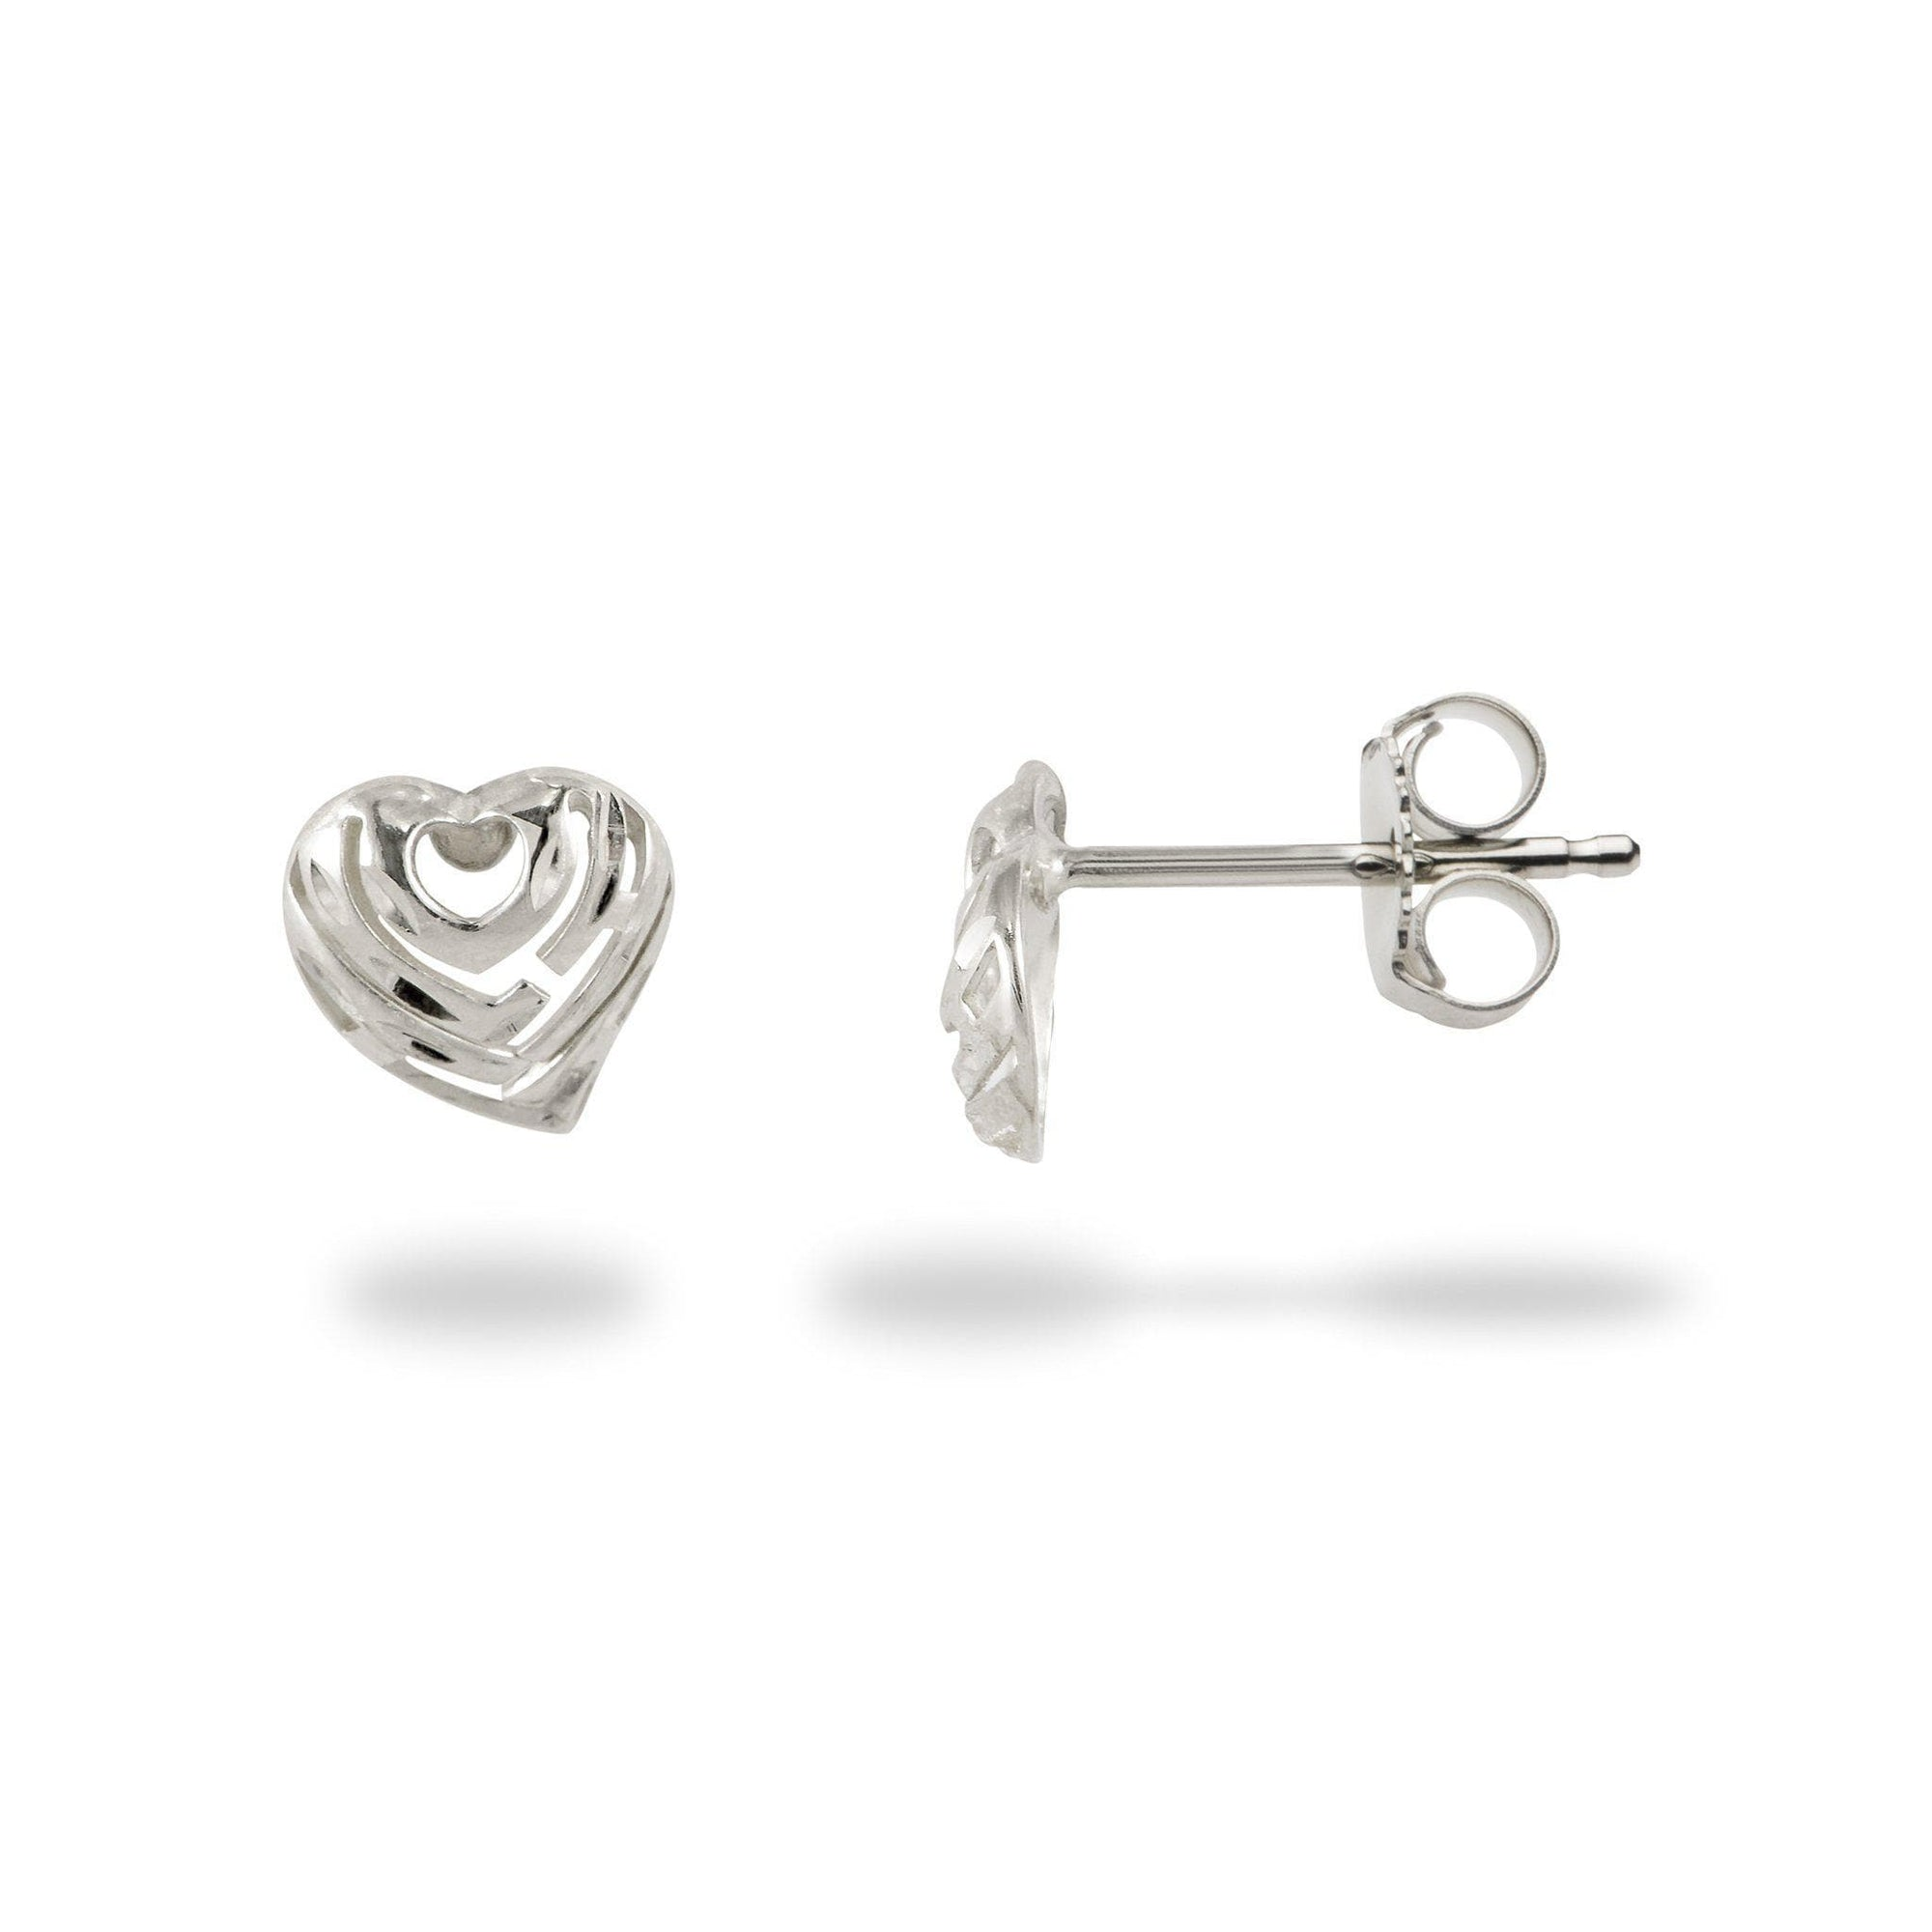 Aloha Heart Earrings in White Gold - 7mm-[SKU]